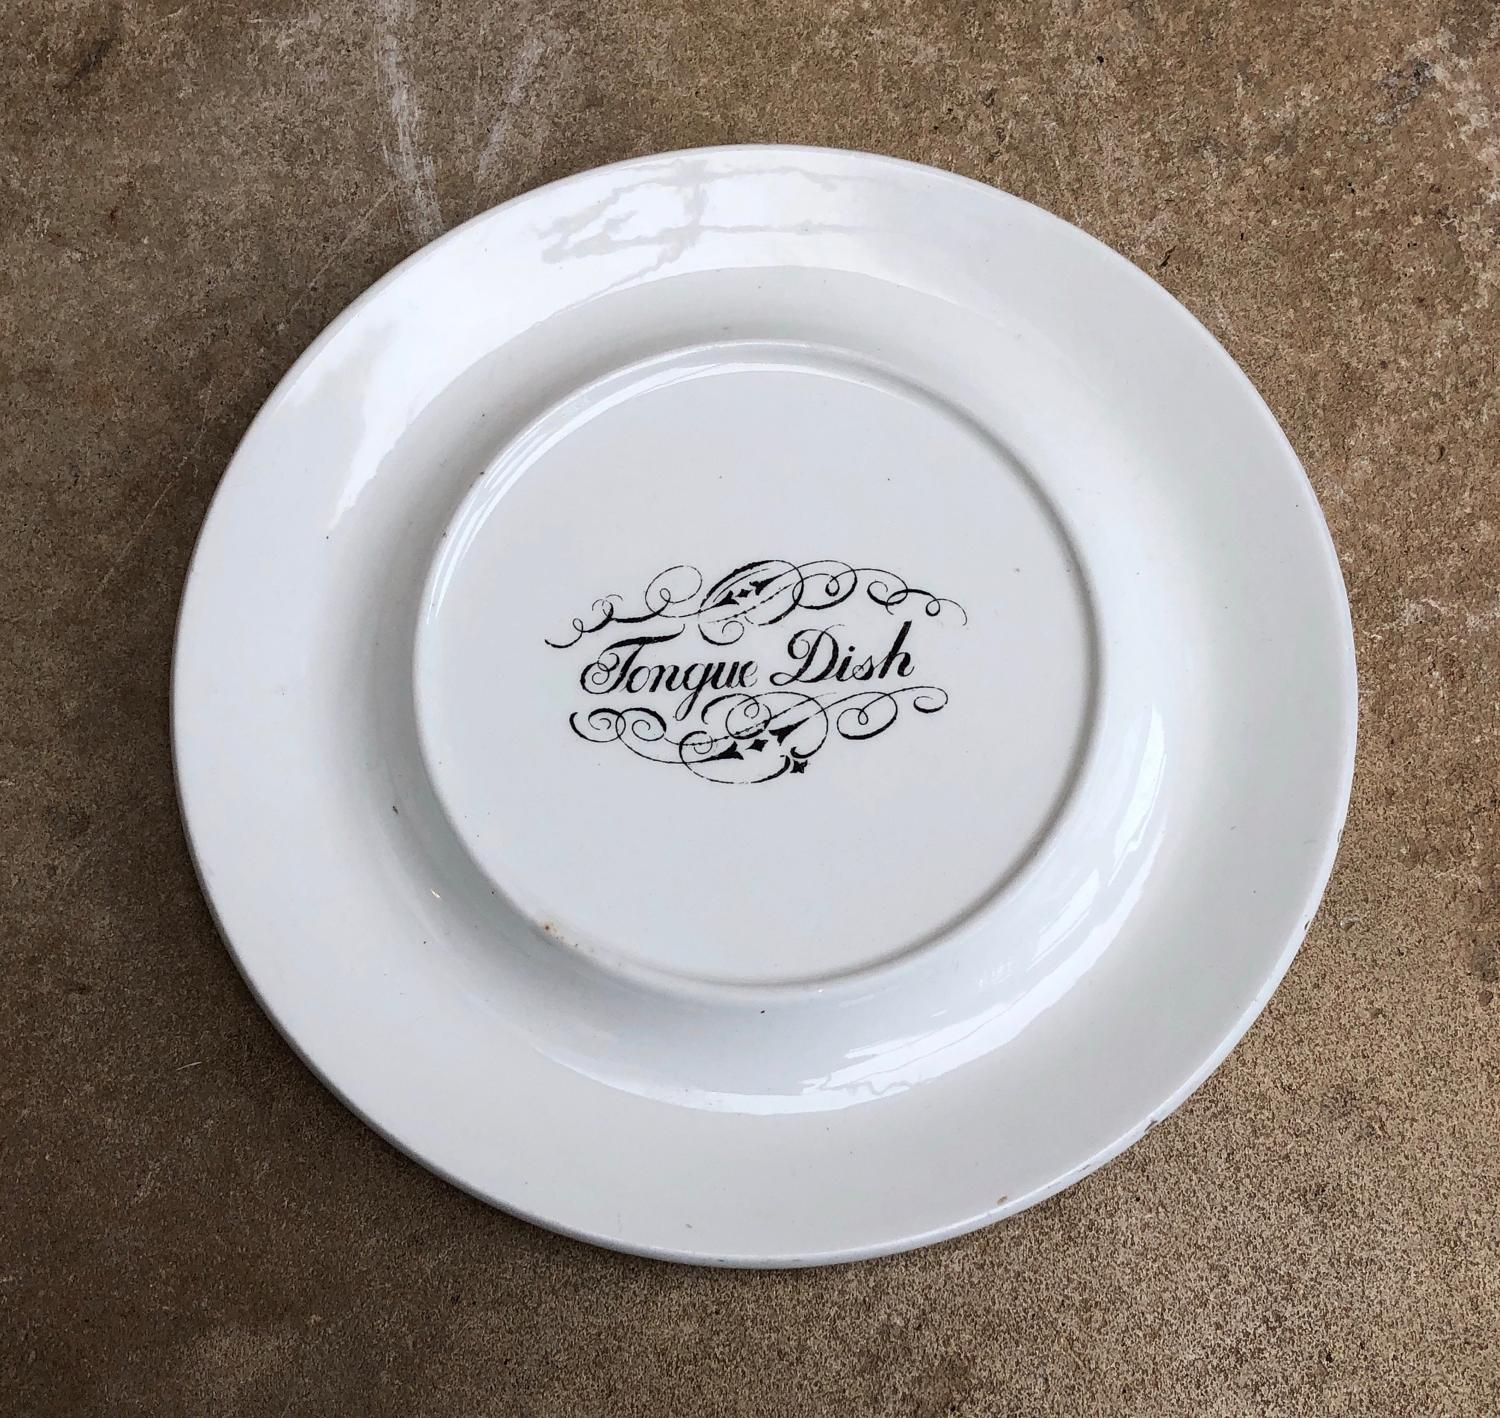 Edwardian White Ironstone Tongue Dish